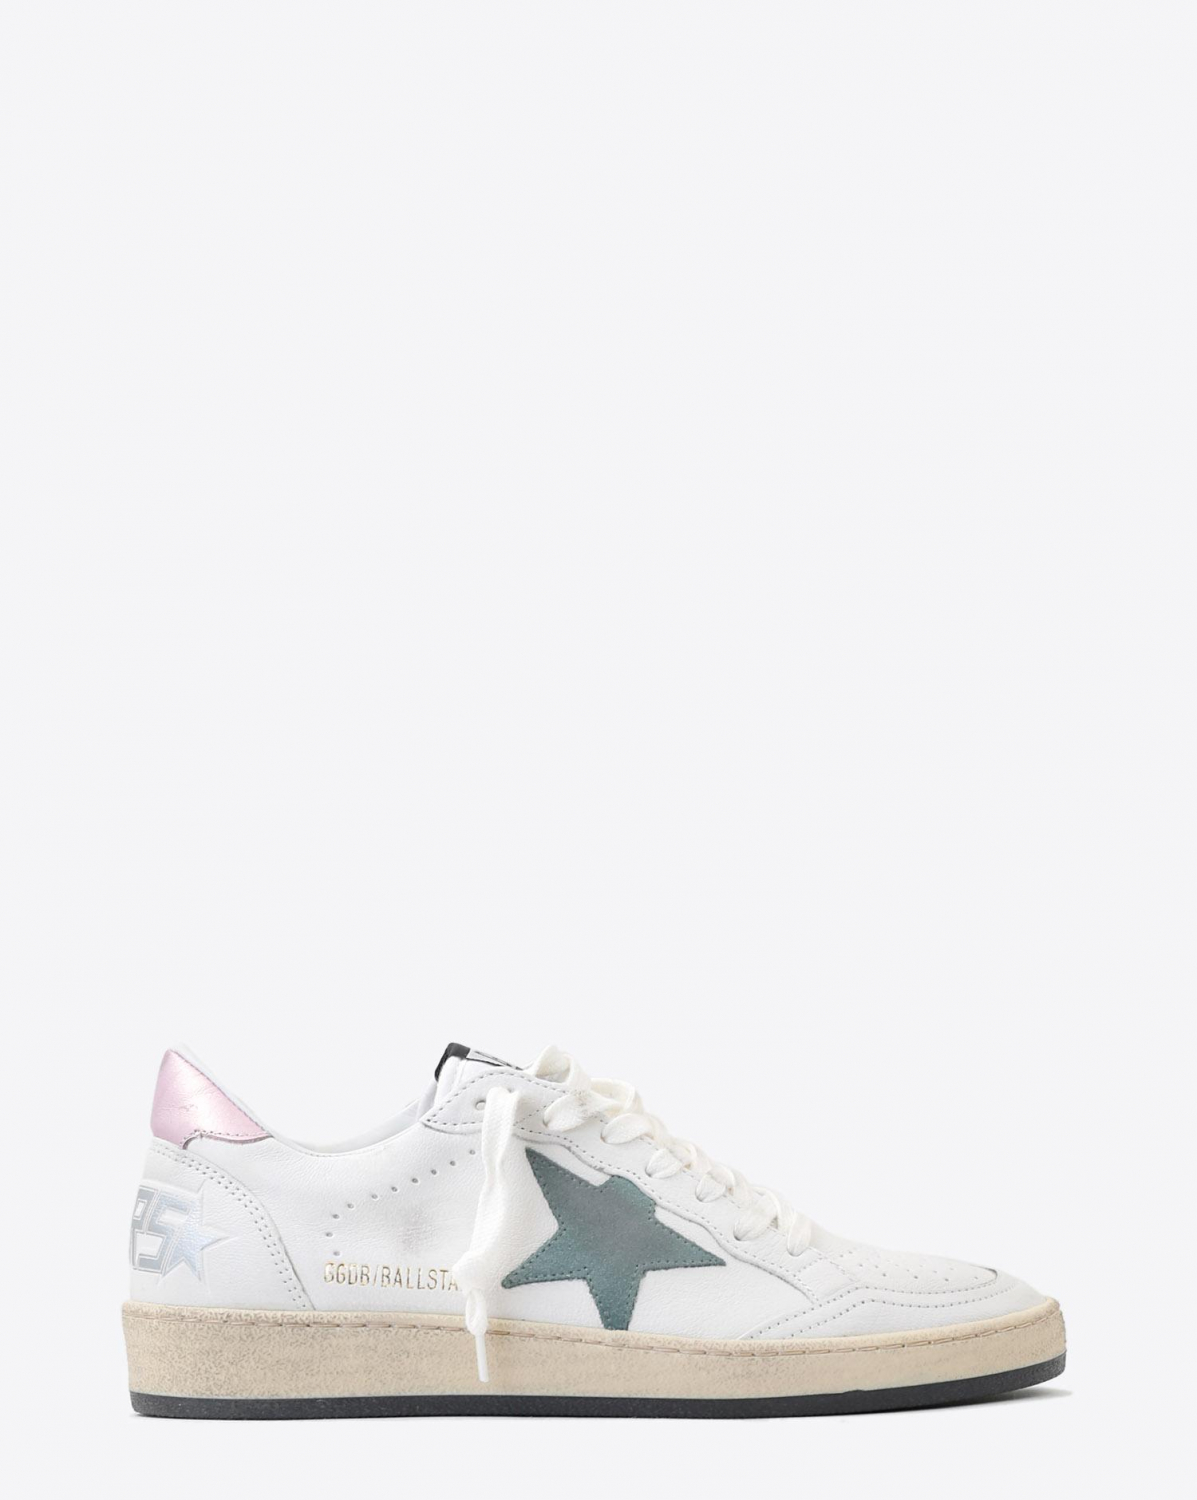 Golden Goose Woman Pré-Collection Sneakers Ball Star - White- Pink Laminated - Green Star